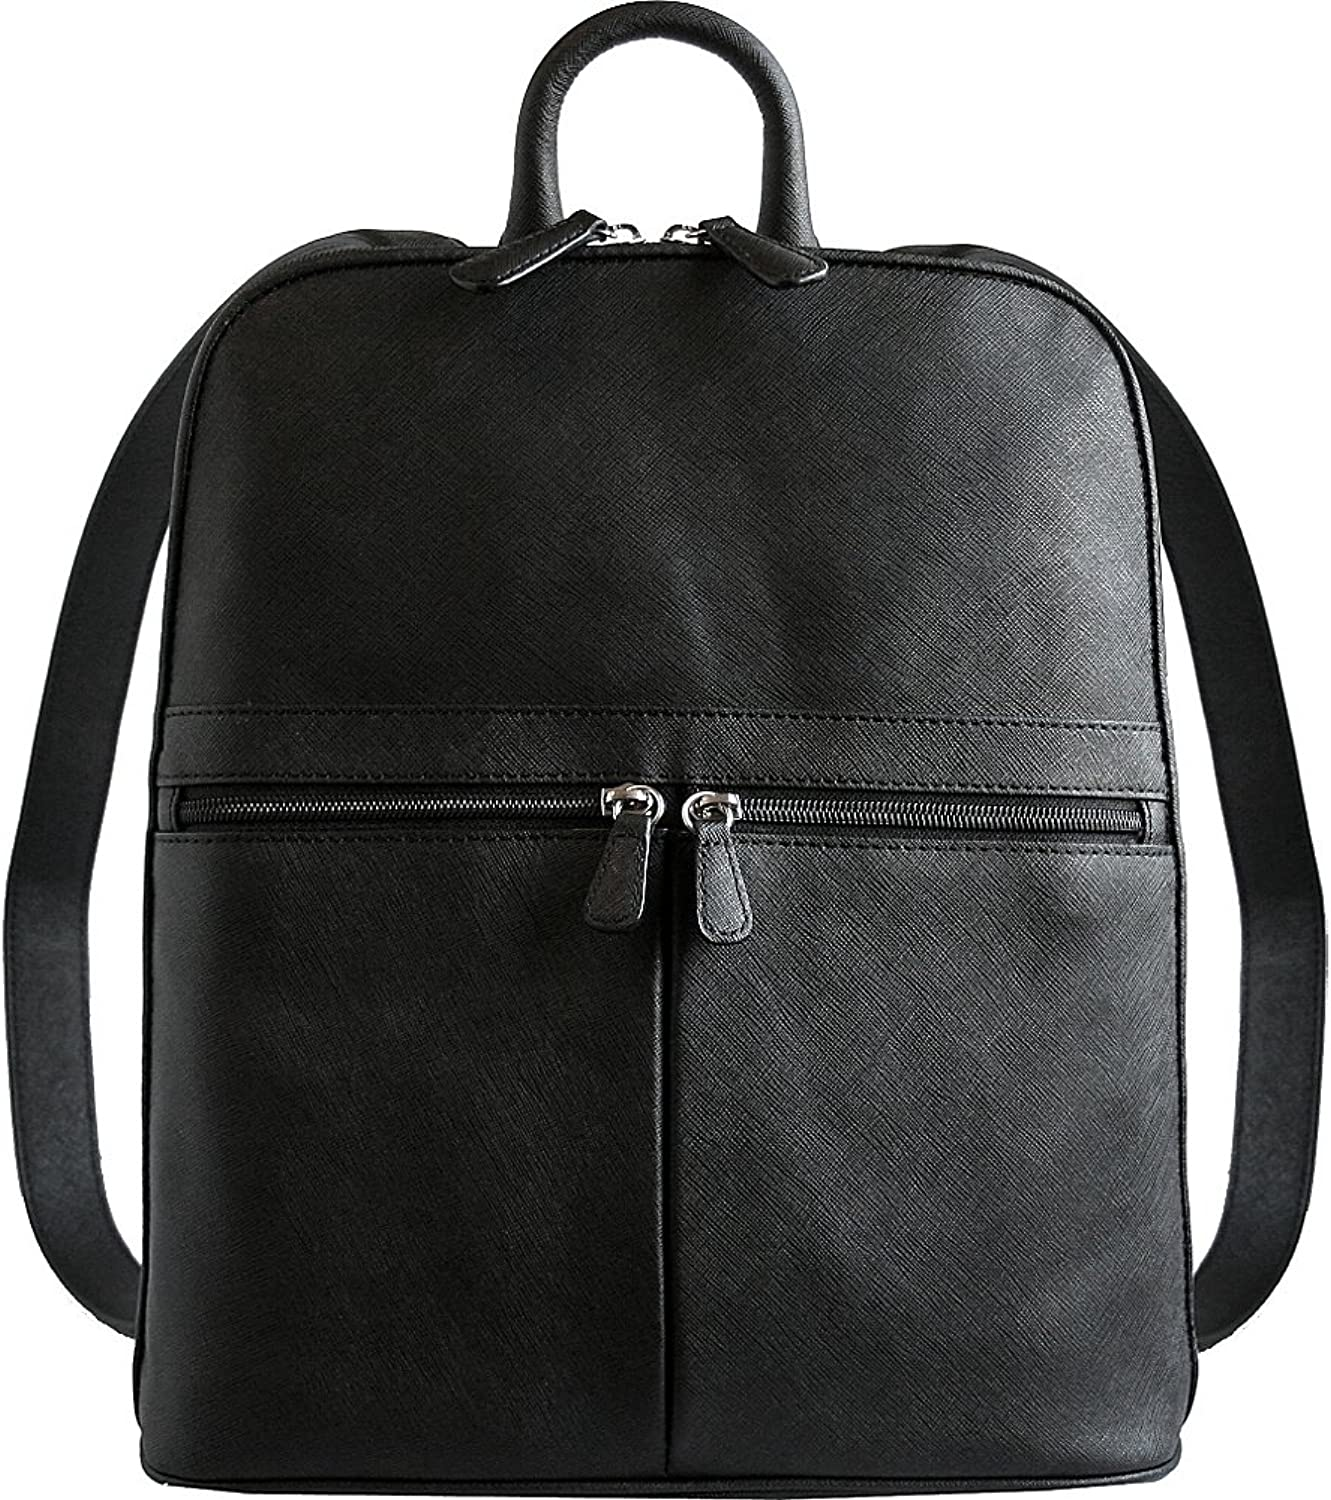 Belarno Women's B127 Leather Slim and Lightweight Backpack